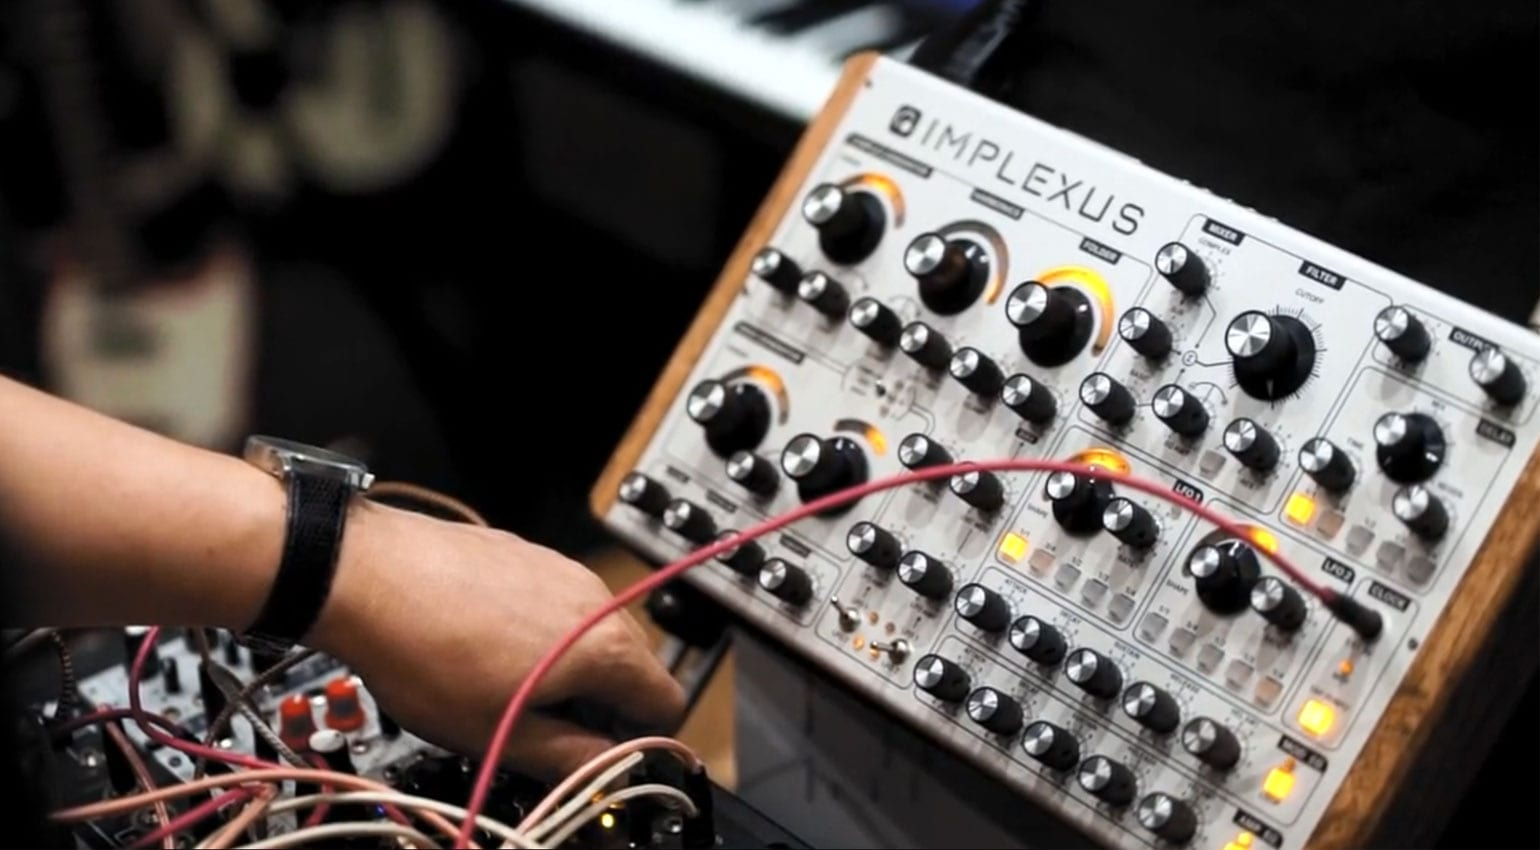 IMPLEXUS: West and East Coast fusion analog synthesizer needs you!